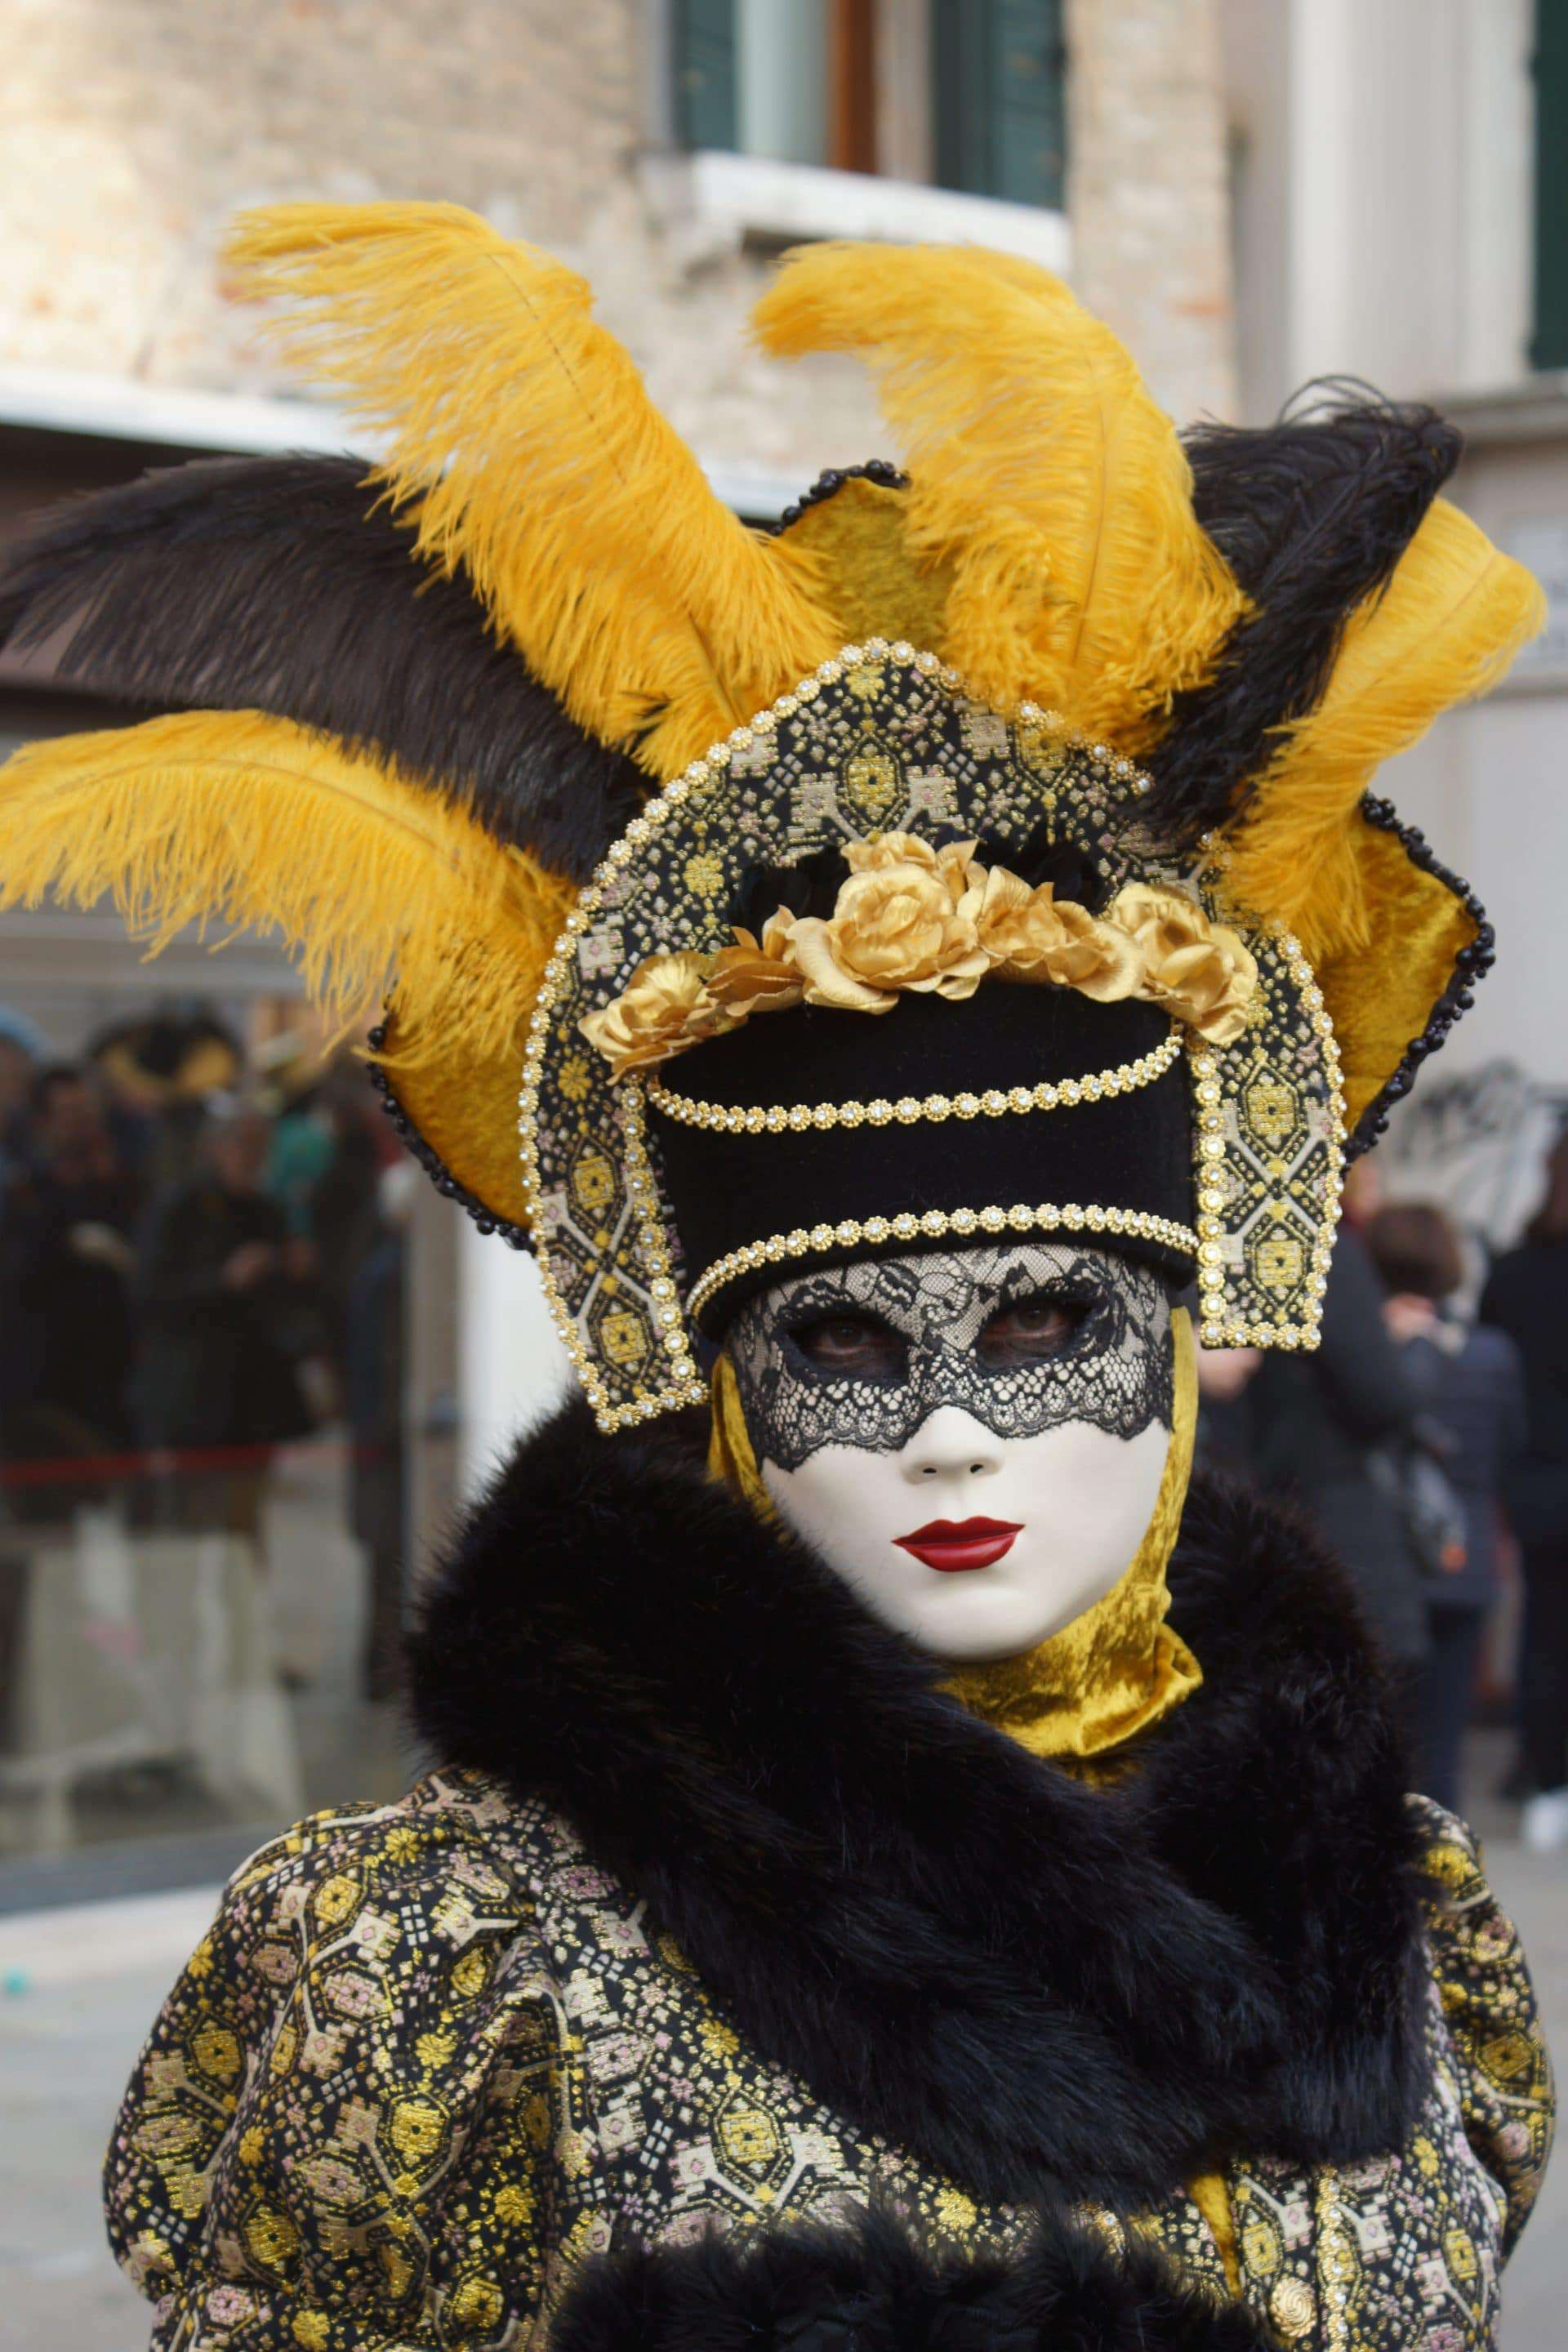 Person wearing a fancy costume and a mask with a feather headdress